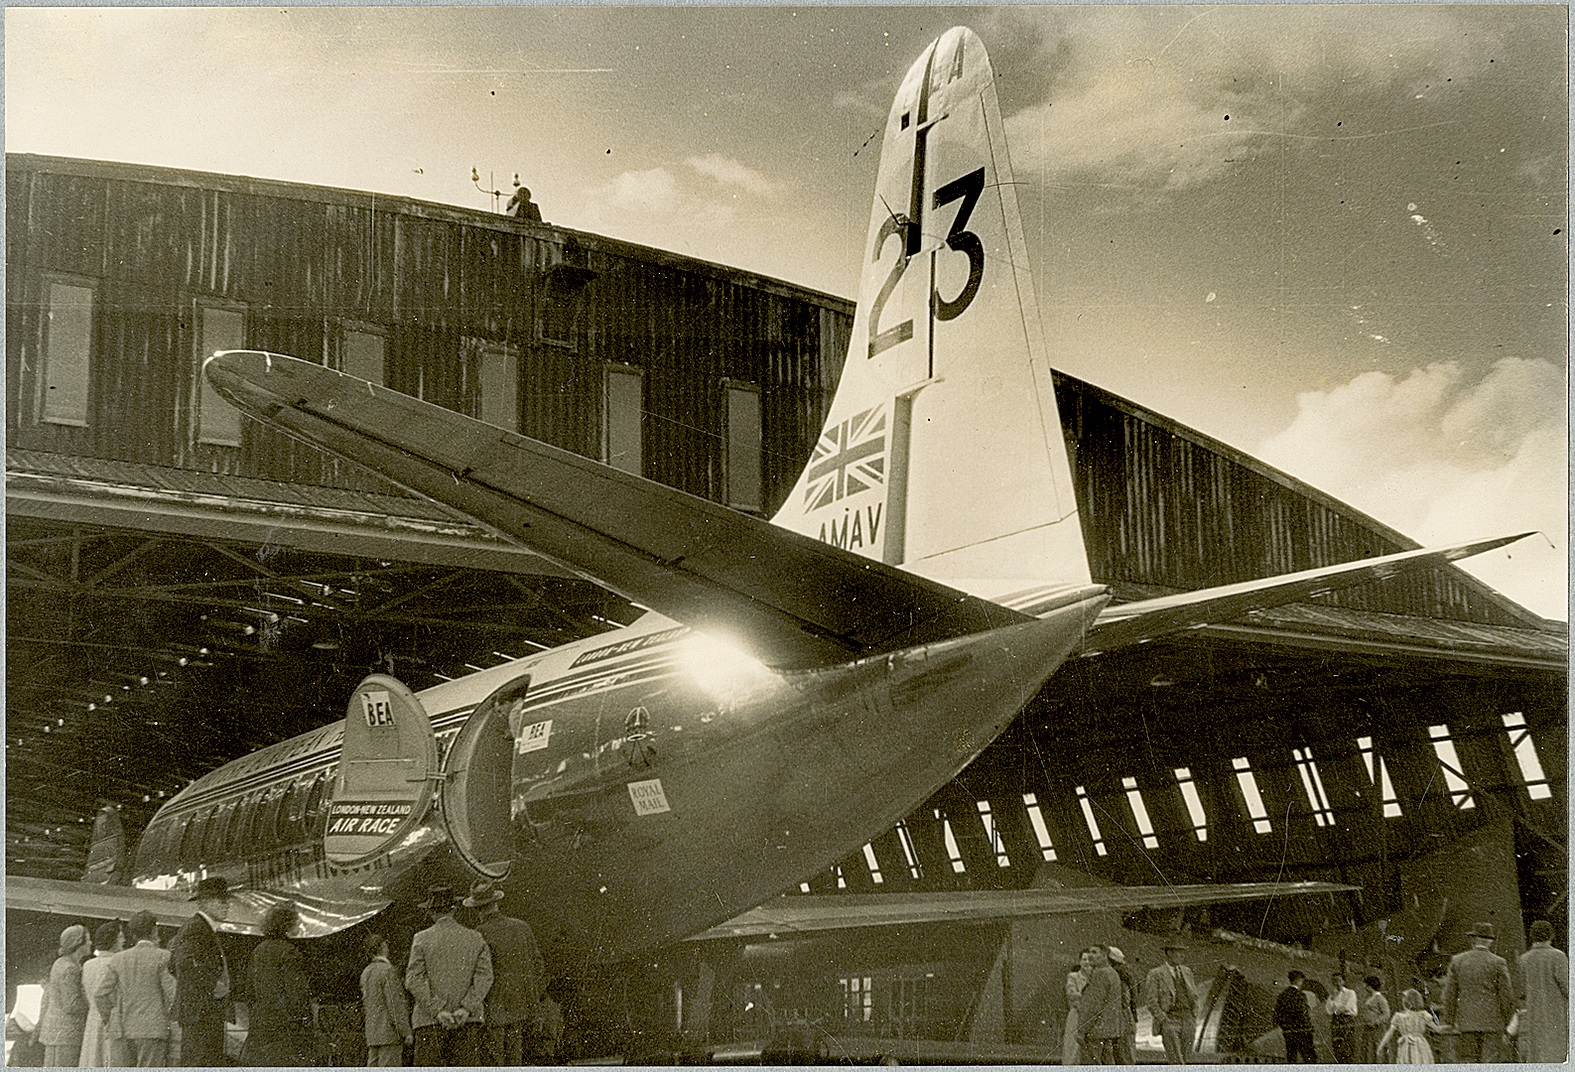 Crowds gather at Christchurch Airport to view the Vickers Viscount that flew here in the London...